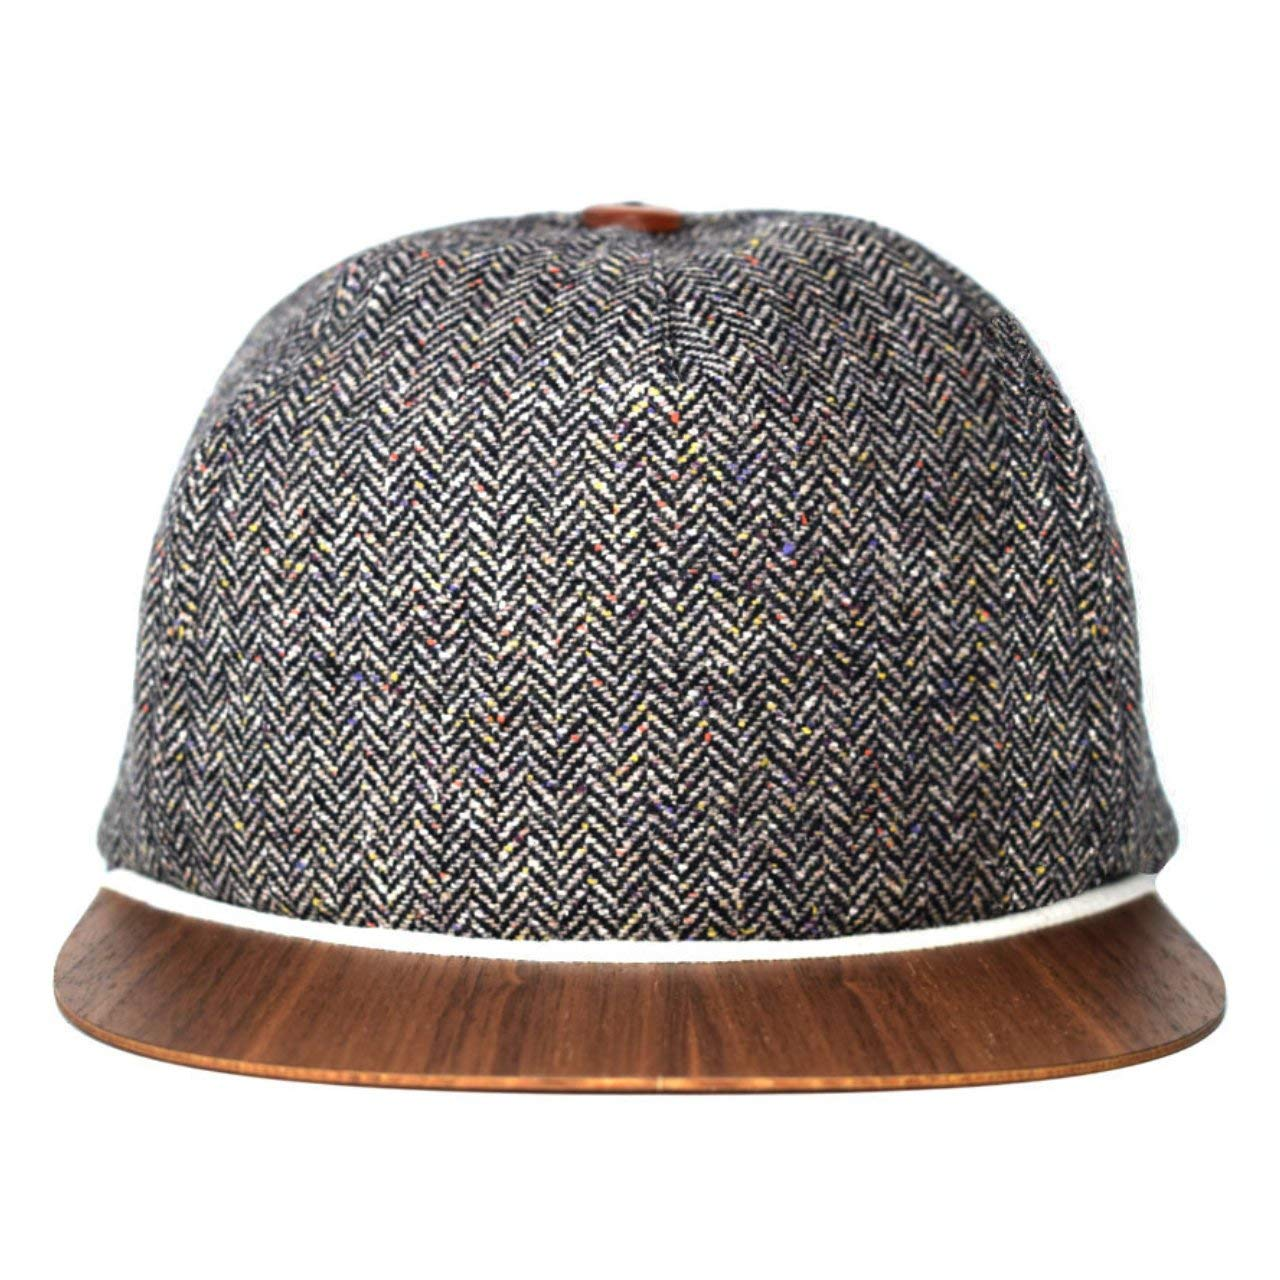 7e6ea6cade7 Get Quotations · Tweed Cap with unique wooden brim - Made in Germany - Wool  hat - Light